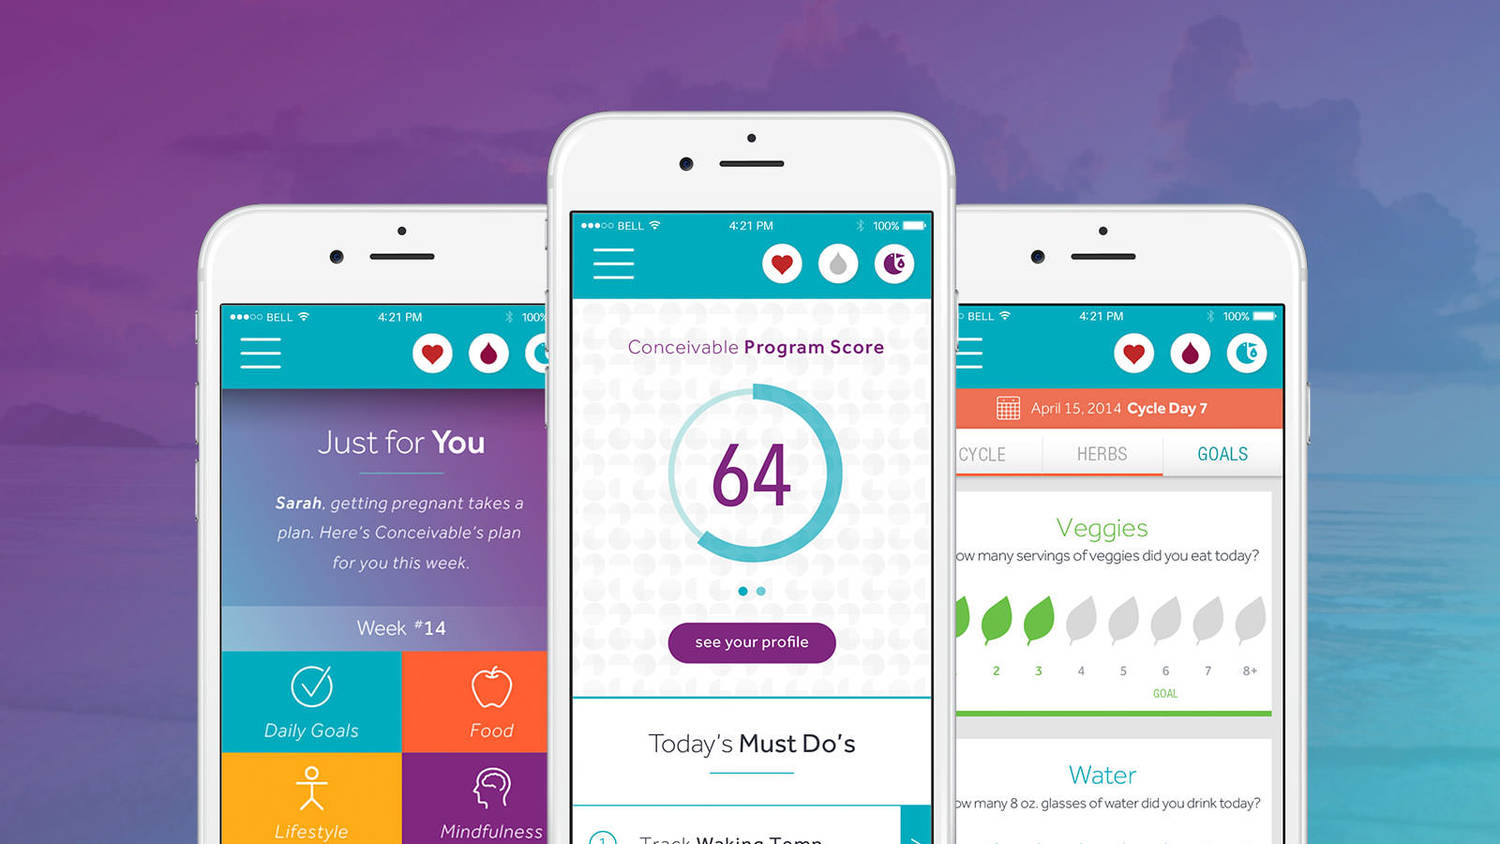 Conceivable's built in fertility assessment starts giving you fertility insights and program recommendations right away